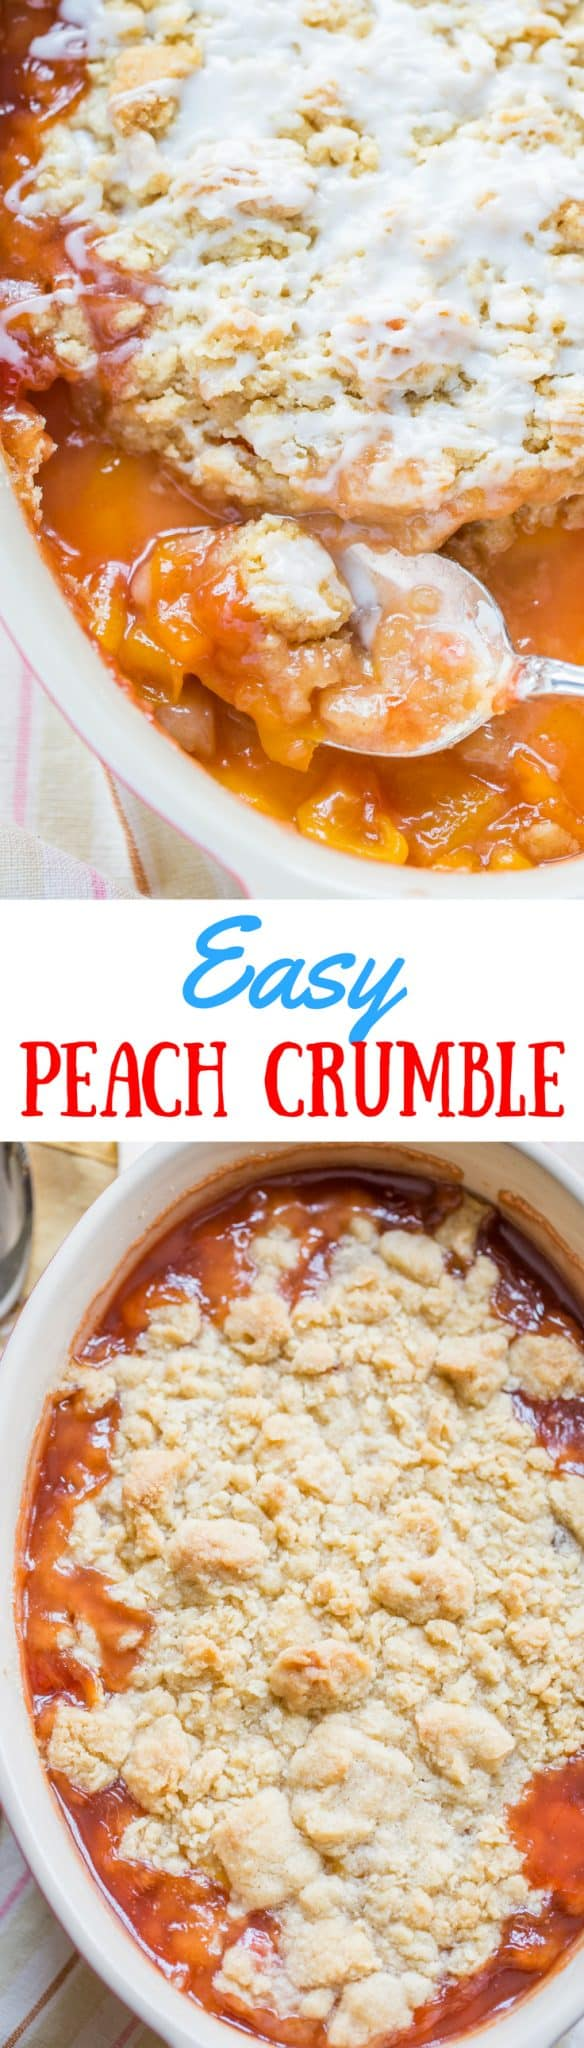 A collage of photos of a peach crumble